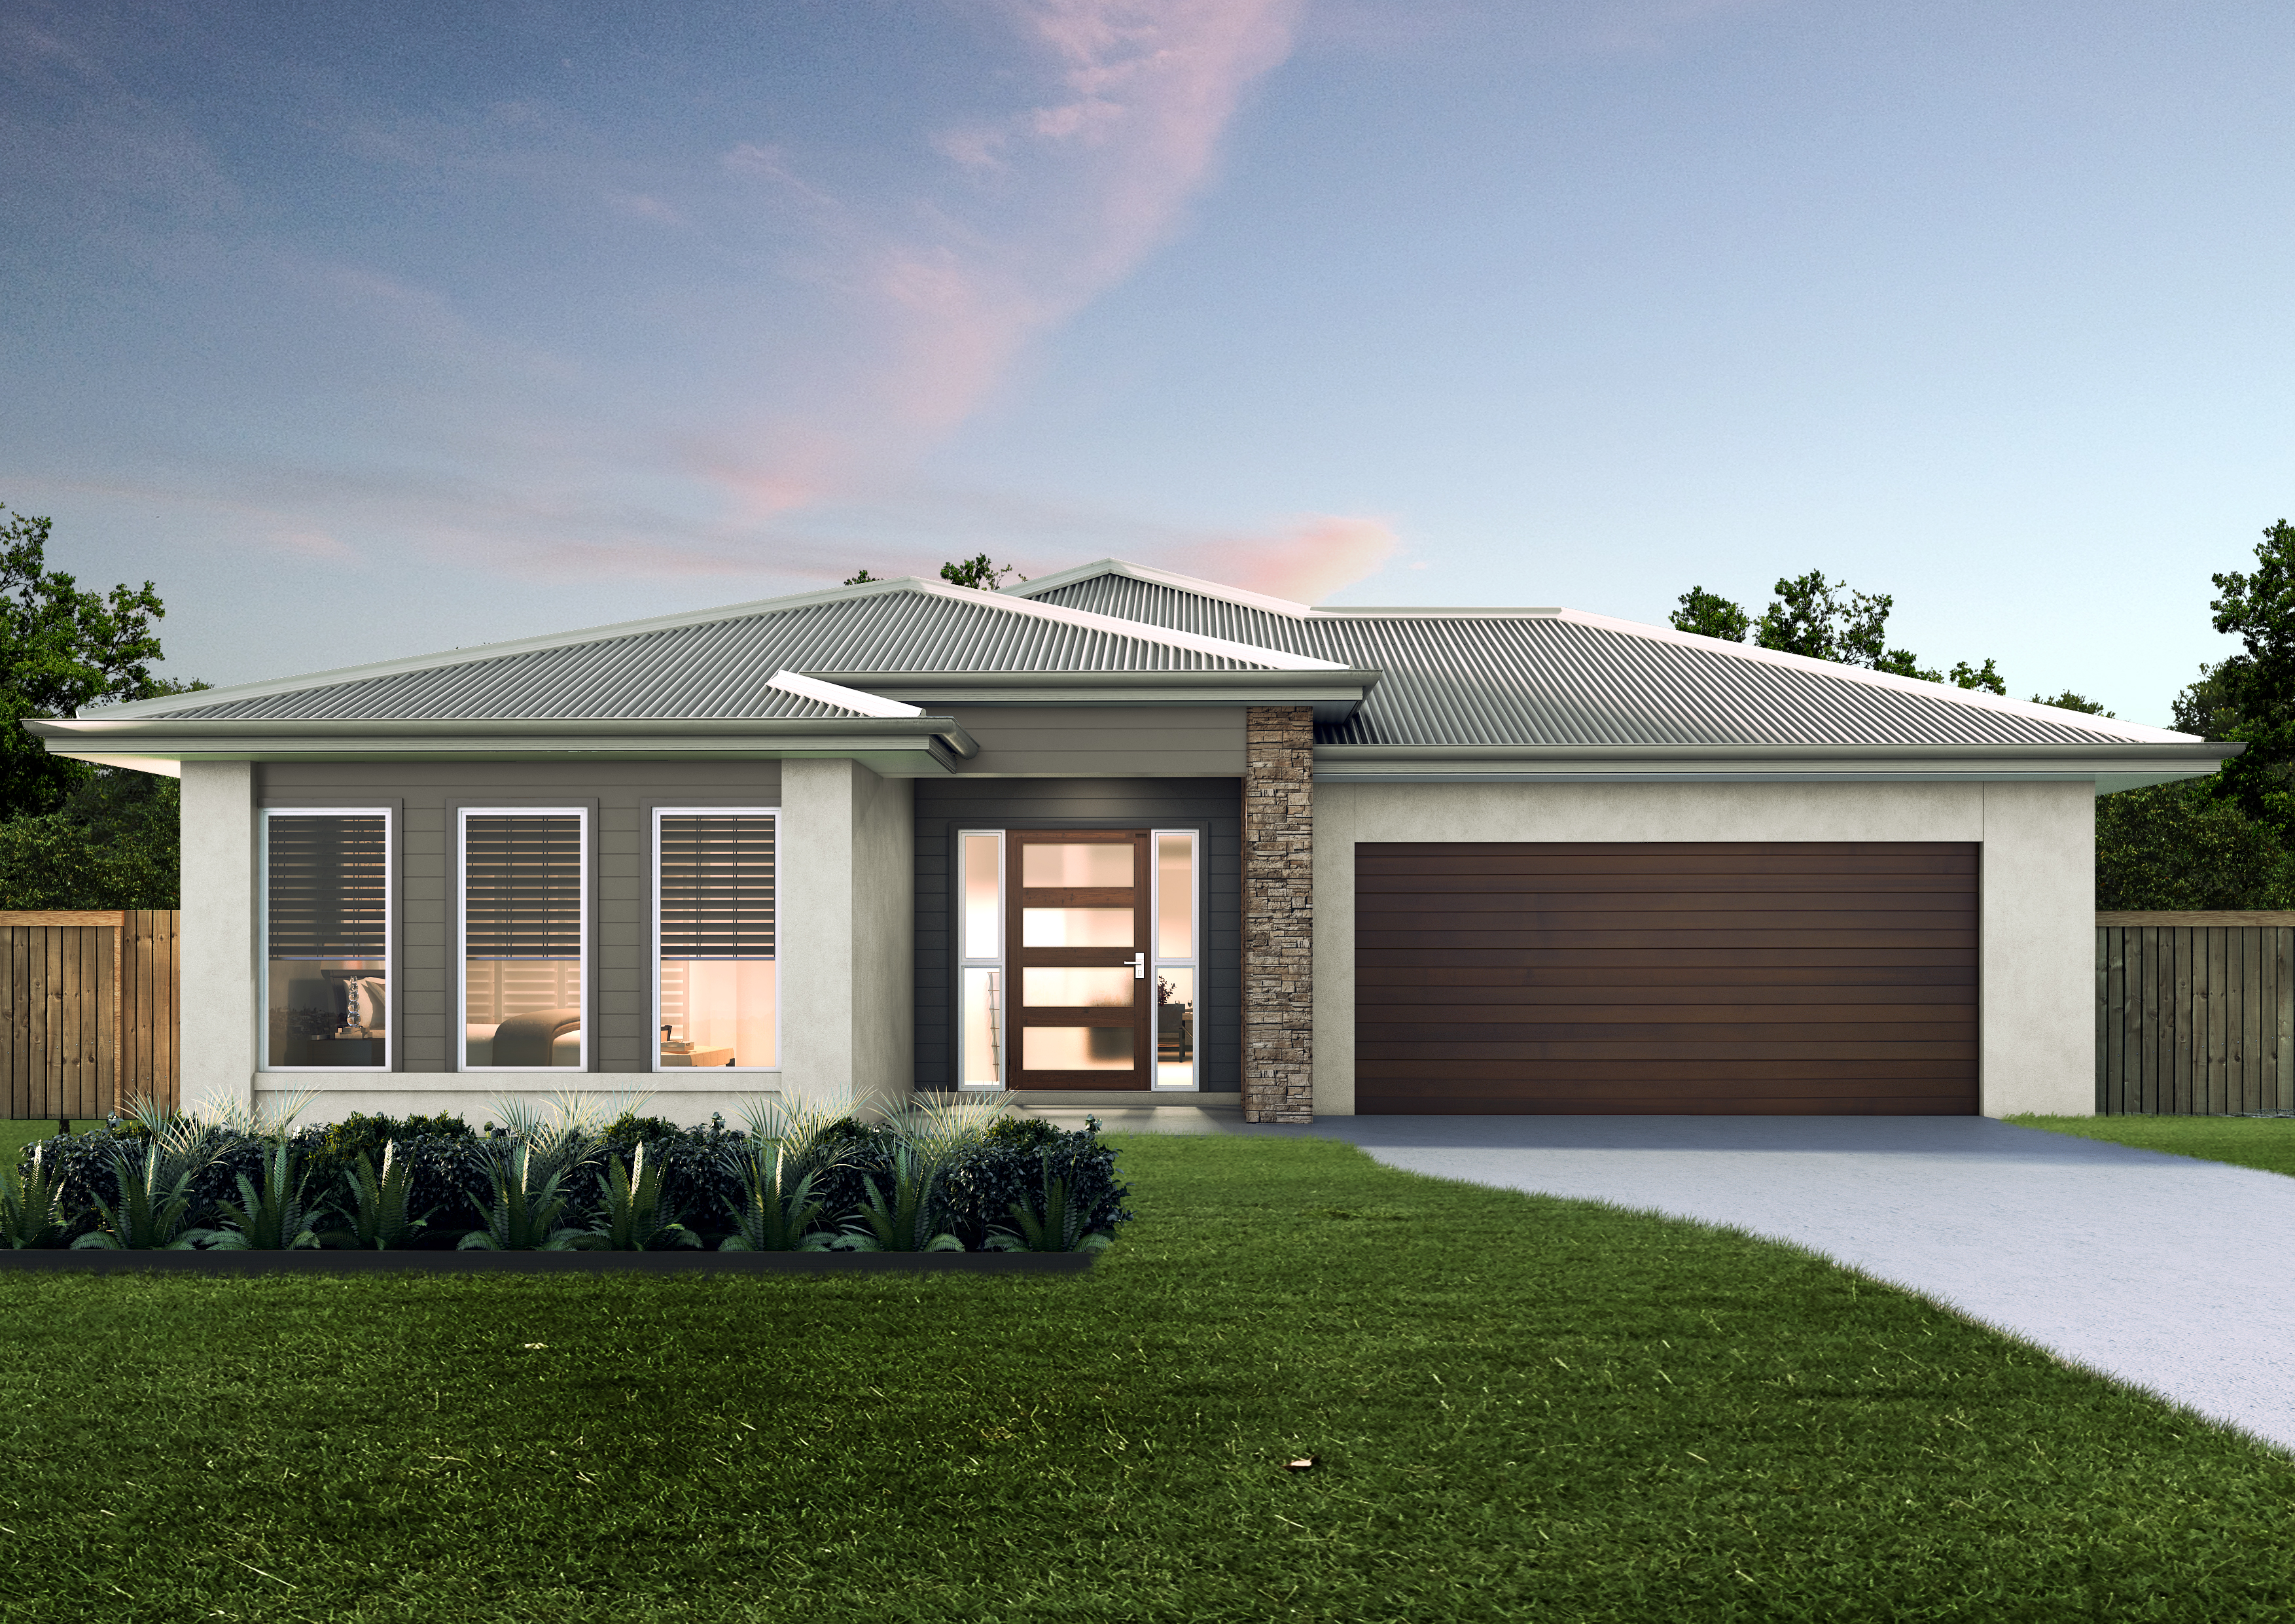 New home design avoca perry homes nsw qld for Perry home designs